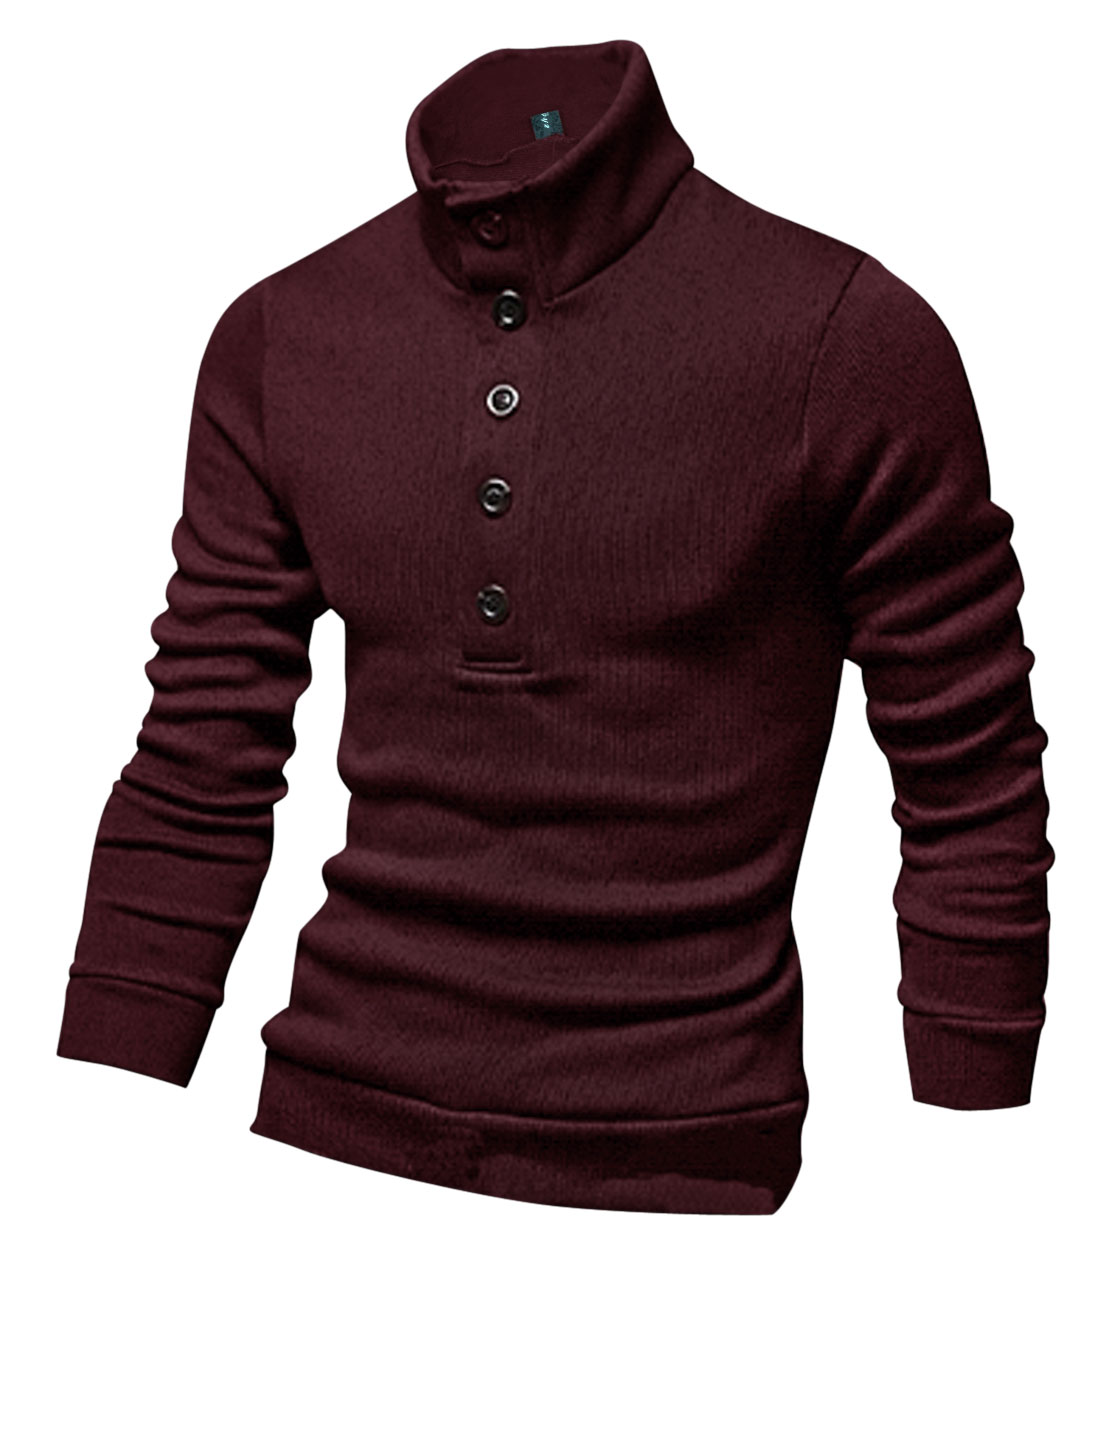 New Style Fashion Mock Neck Casual Knit Shirt for Men Burgundy M